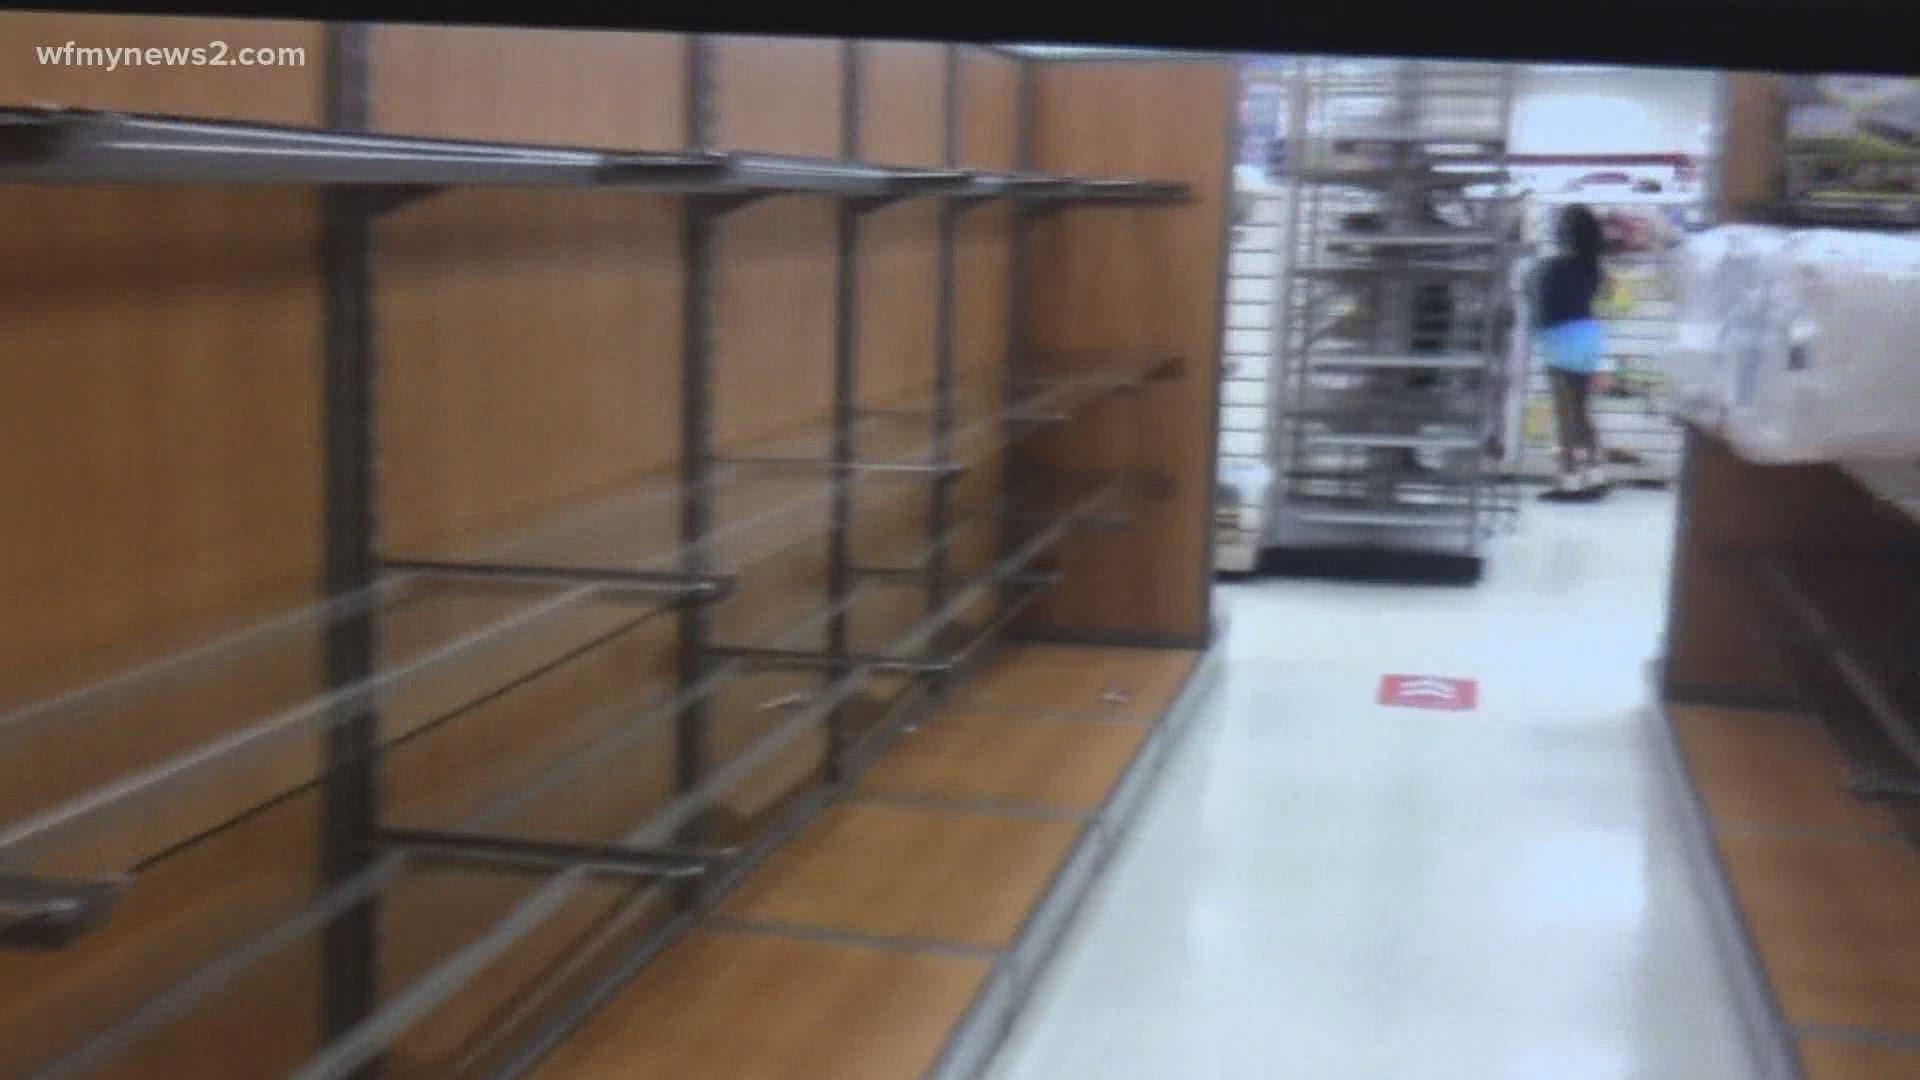 Shopping Centers Low On Inventory As They Reopen During Pandemic Wfmynews2 Com